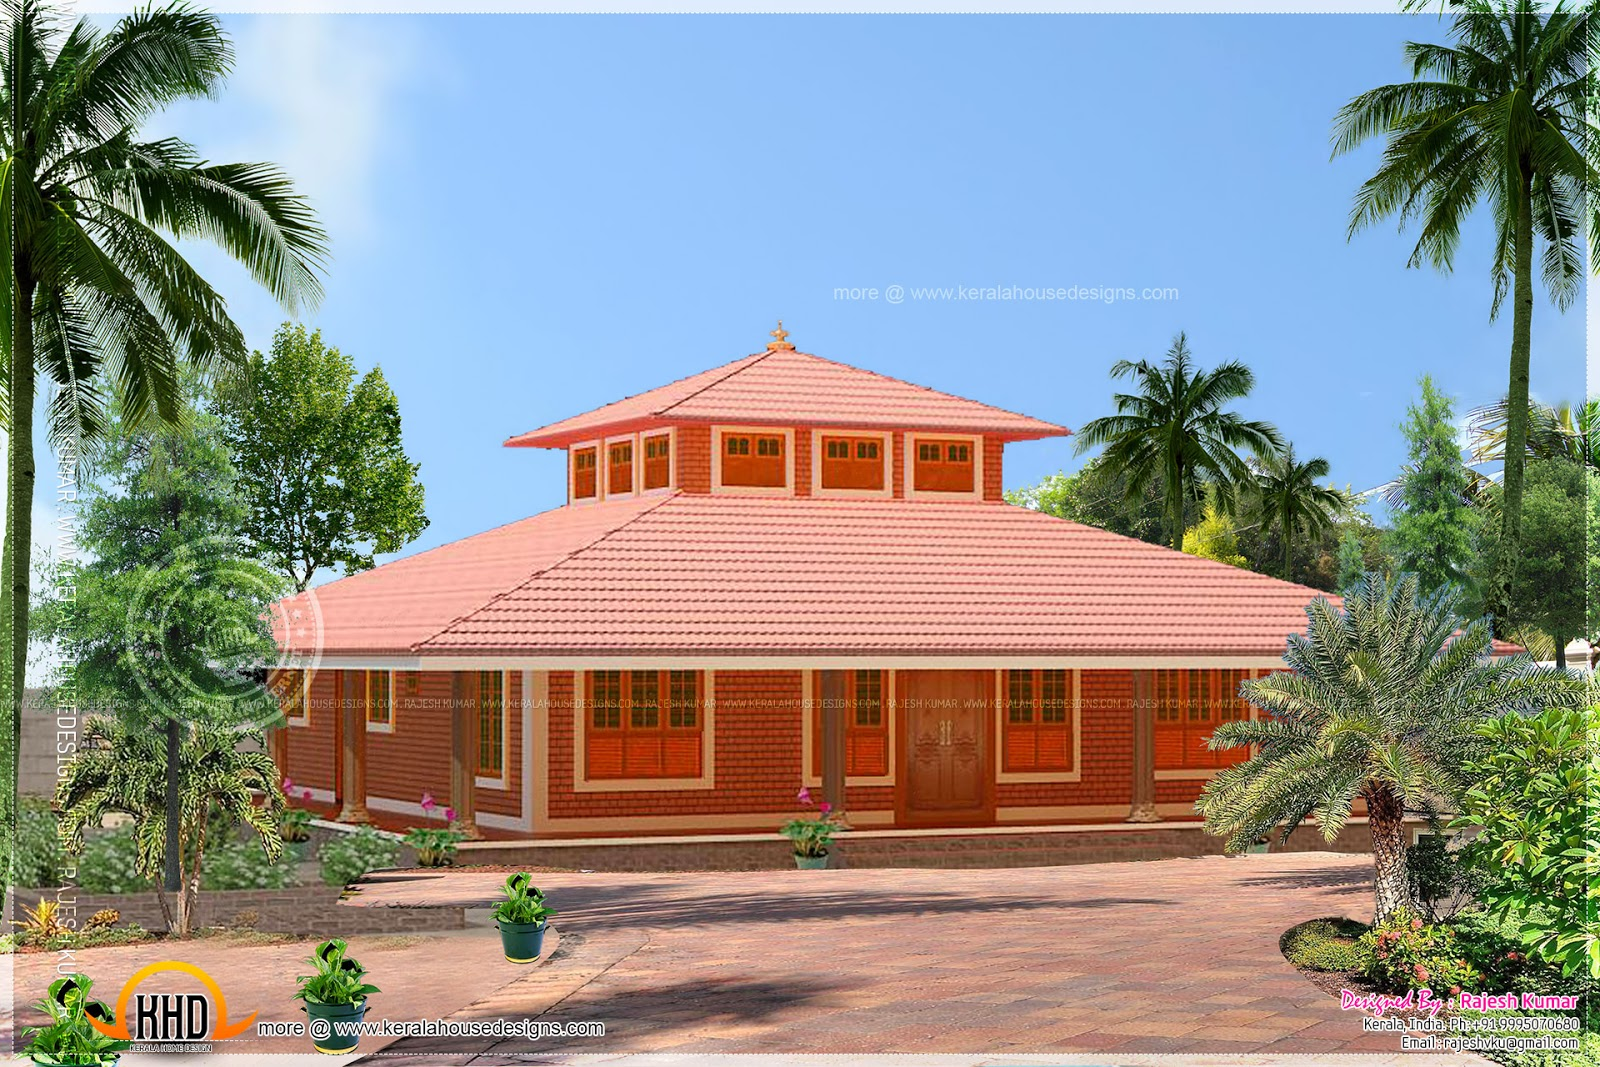 Single storied low cost brick home design kerala home for House designs kerala style low cost